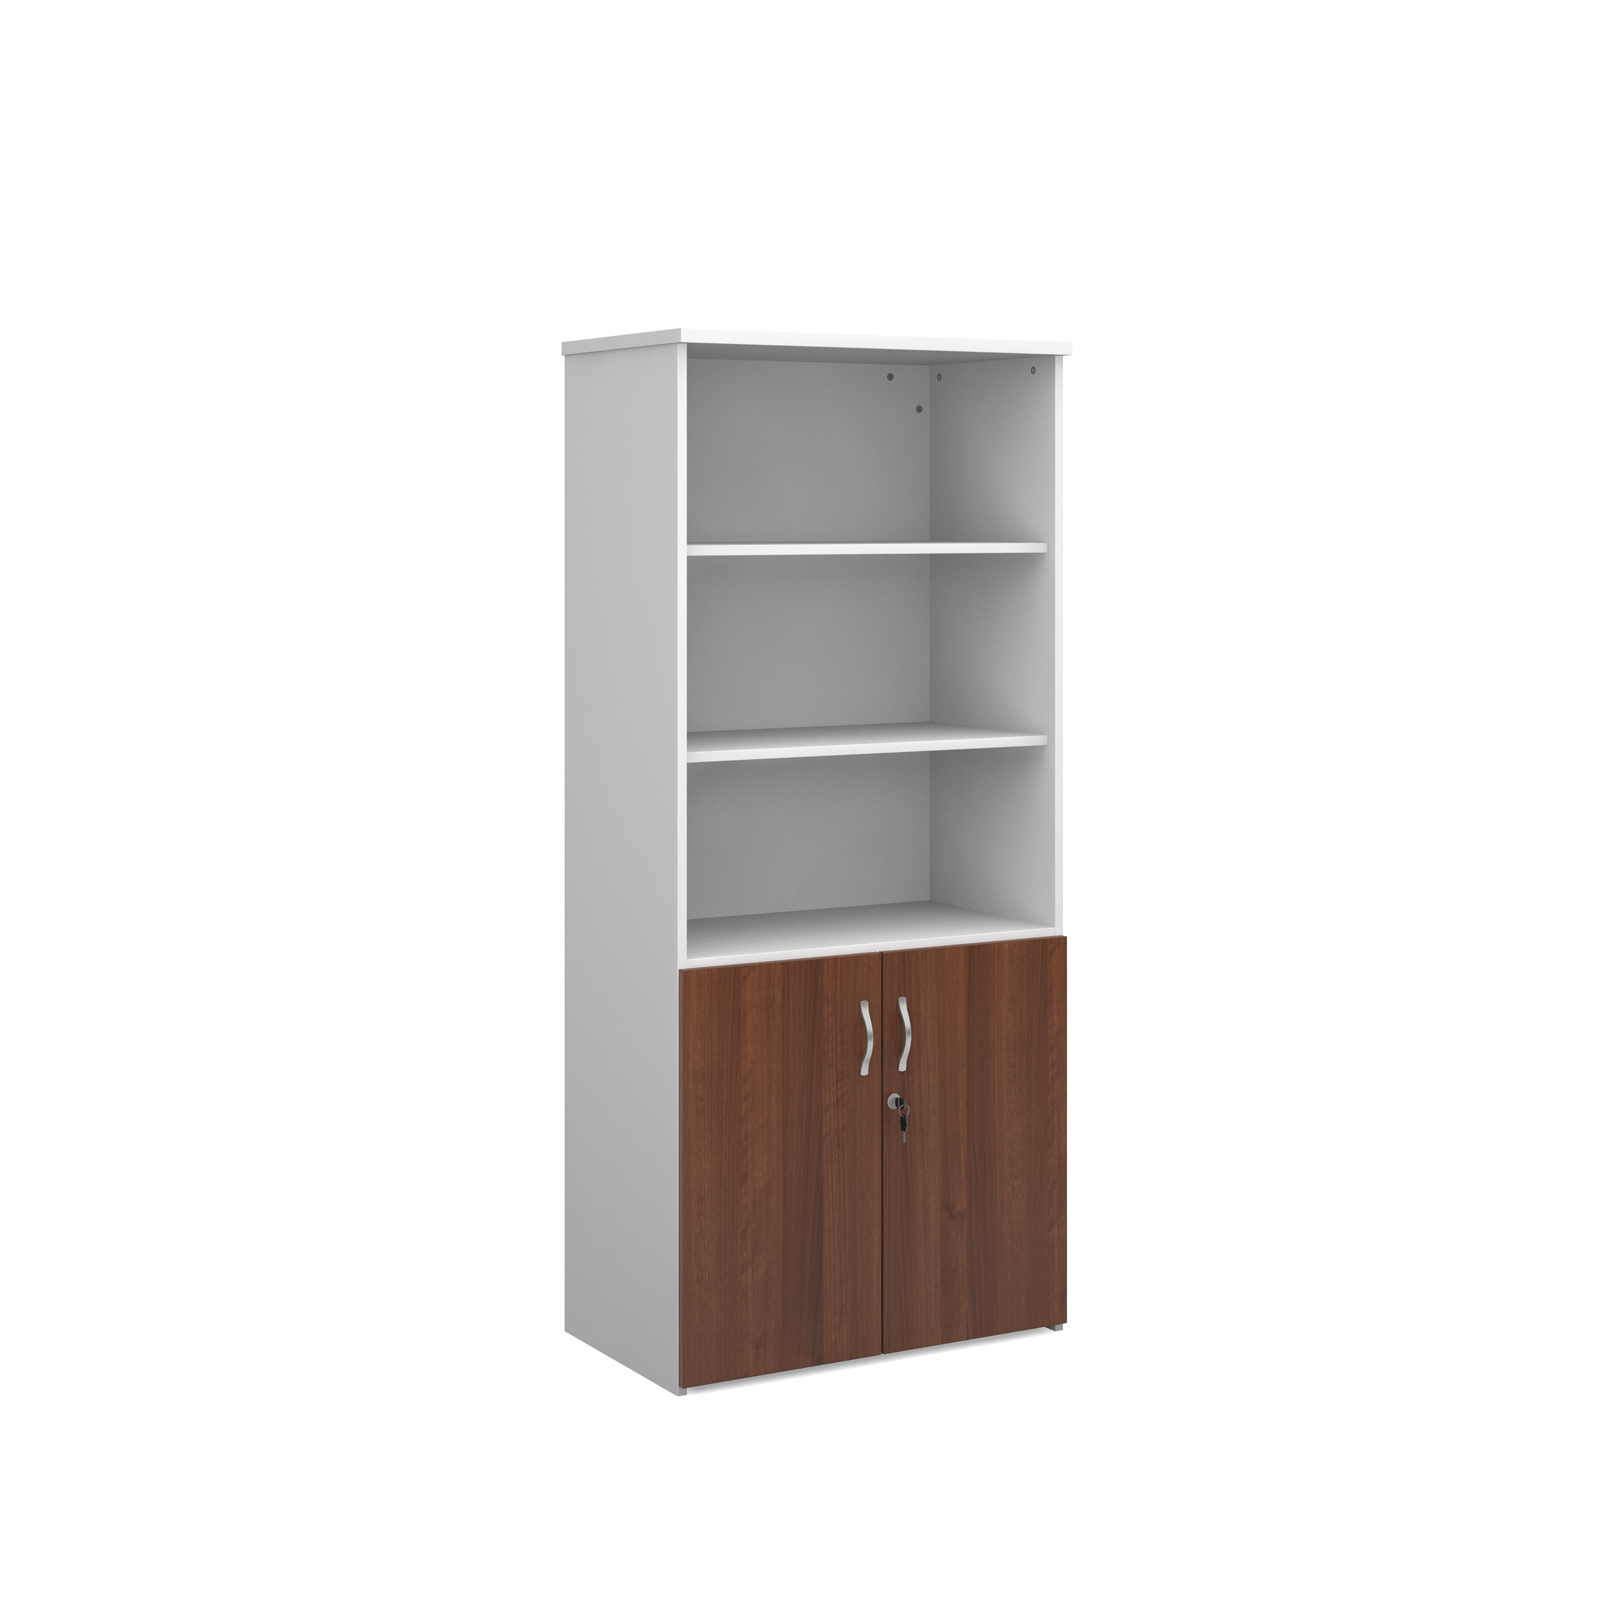 1790mm high combination unit with open top and wood doors in walnut and white